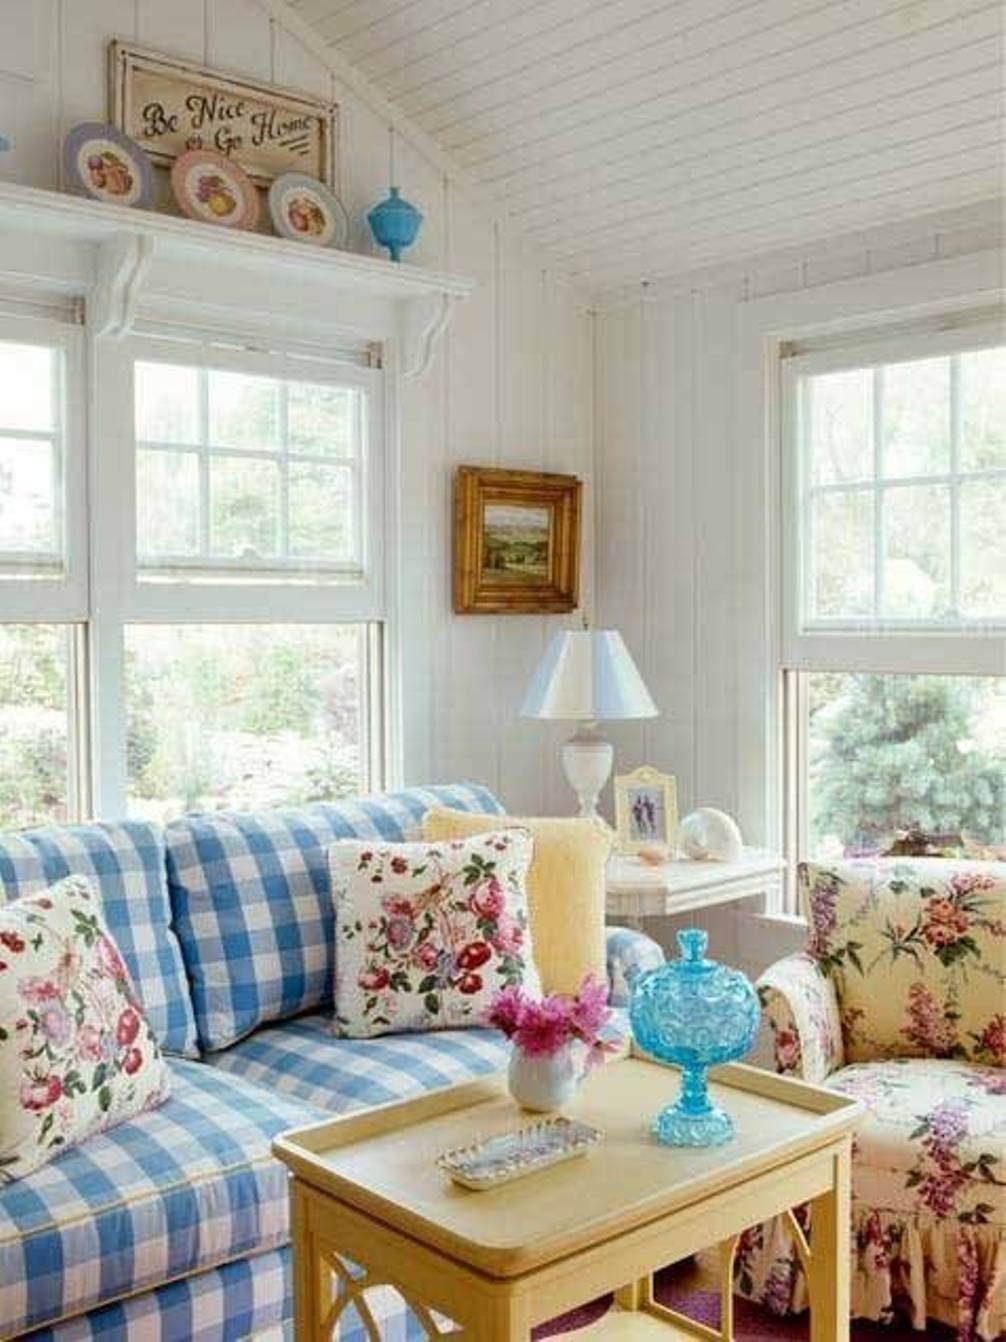 Cottage Living Roomdecorating Ideas 2017 Decorating Trends with Floral sofas In Style